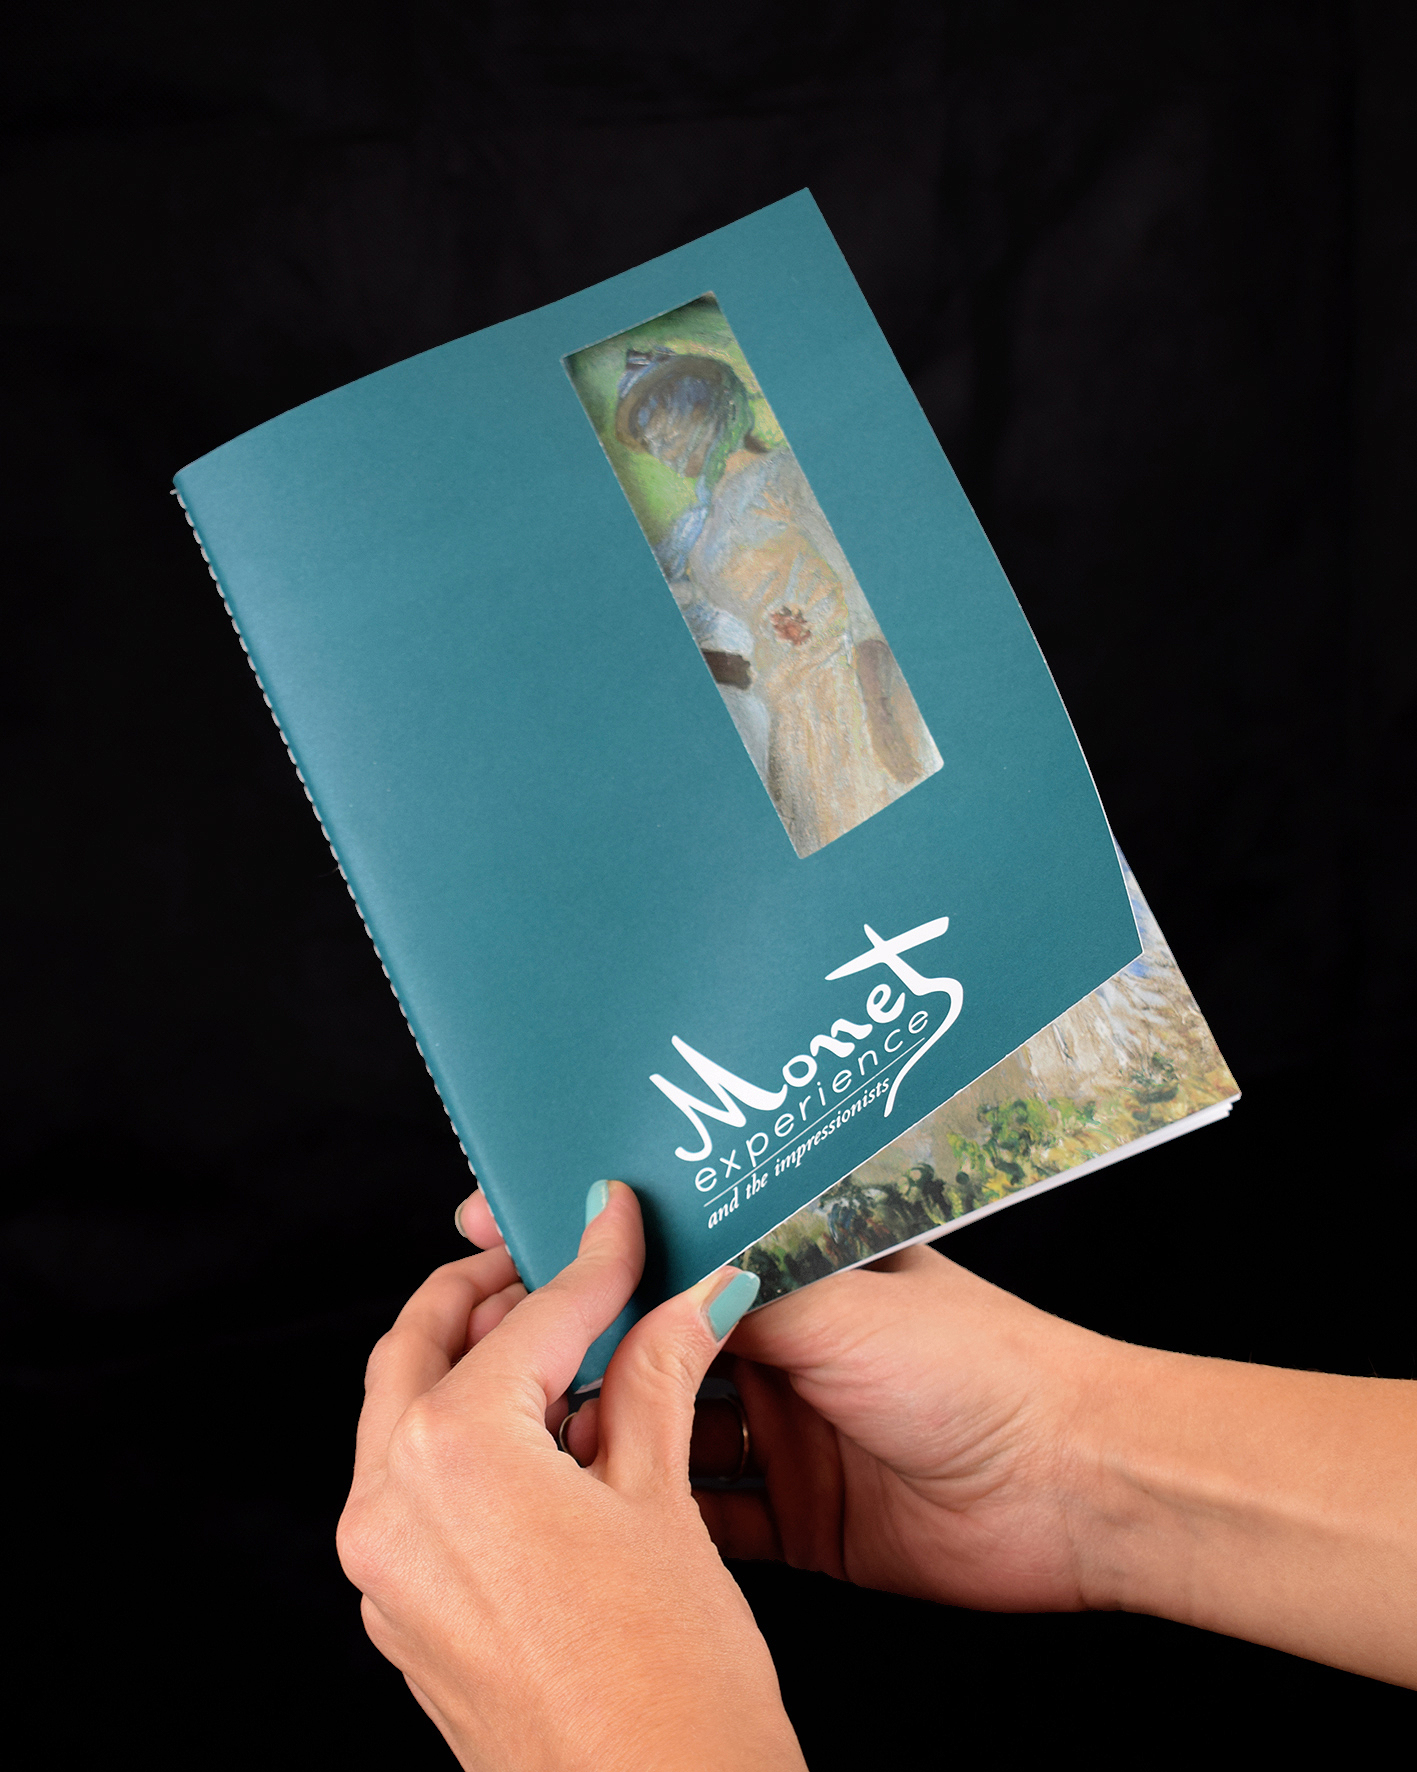 Notes personalizzati stampa digitale per Monet experience